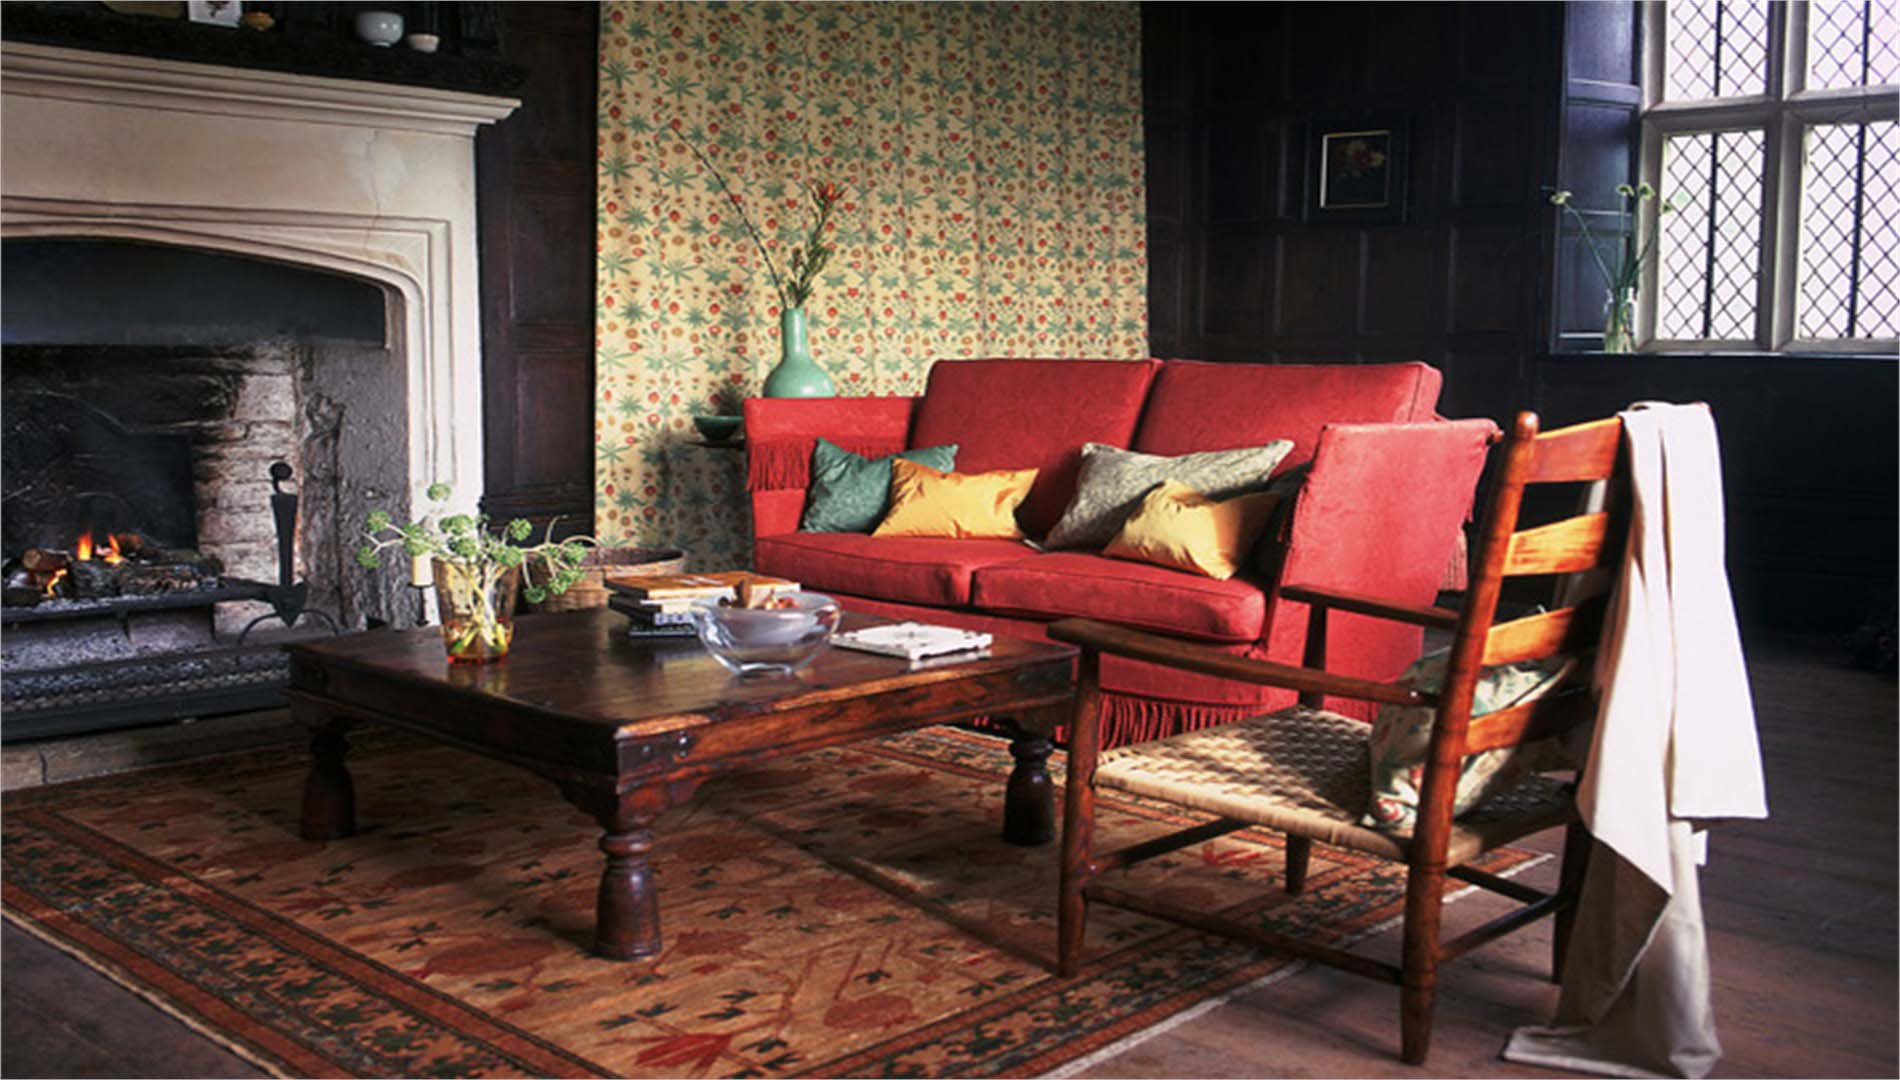 Furnishings and accessories lounge